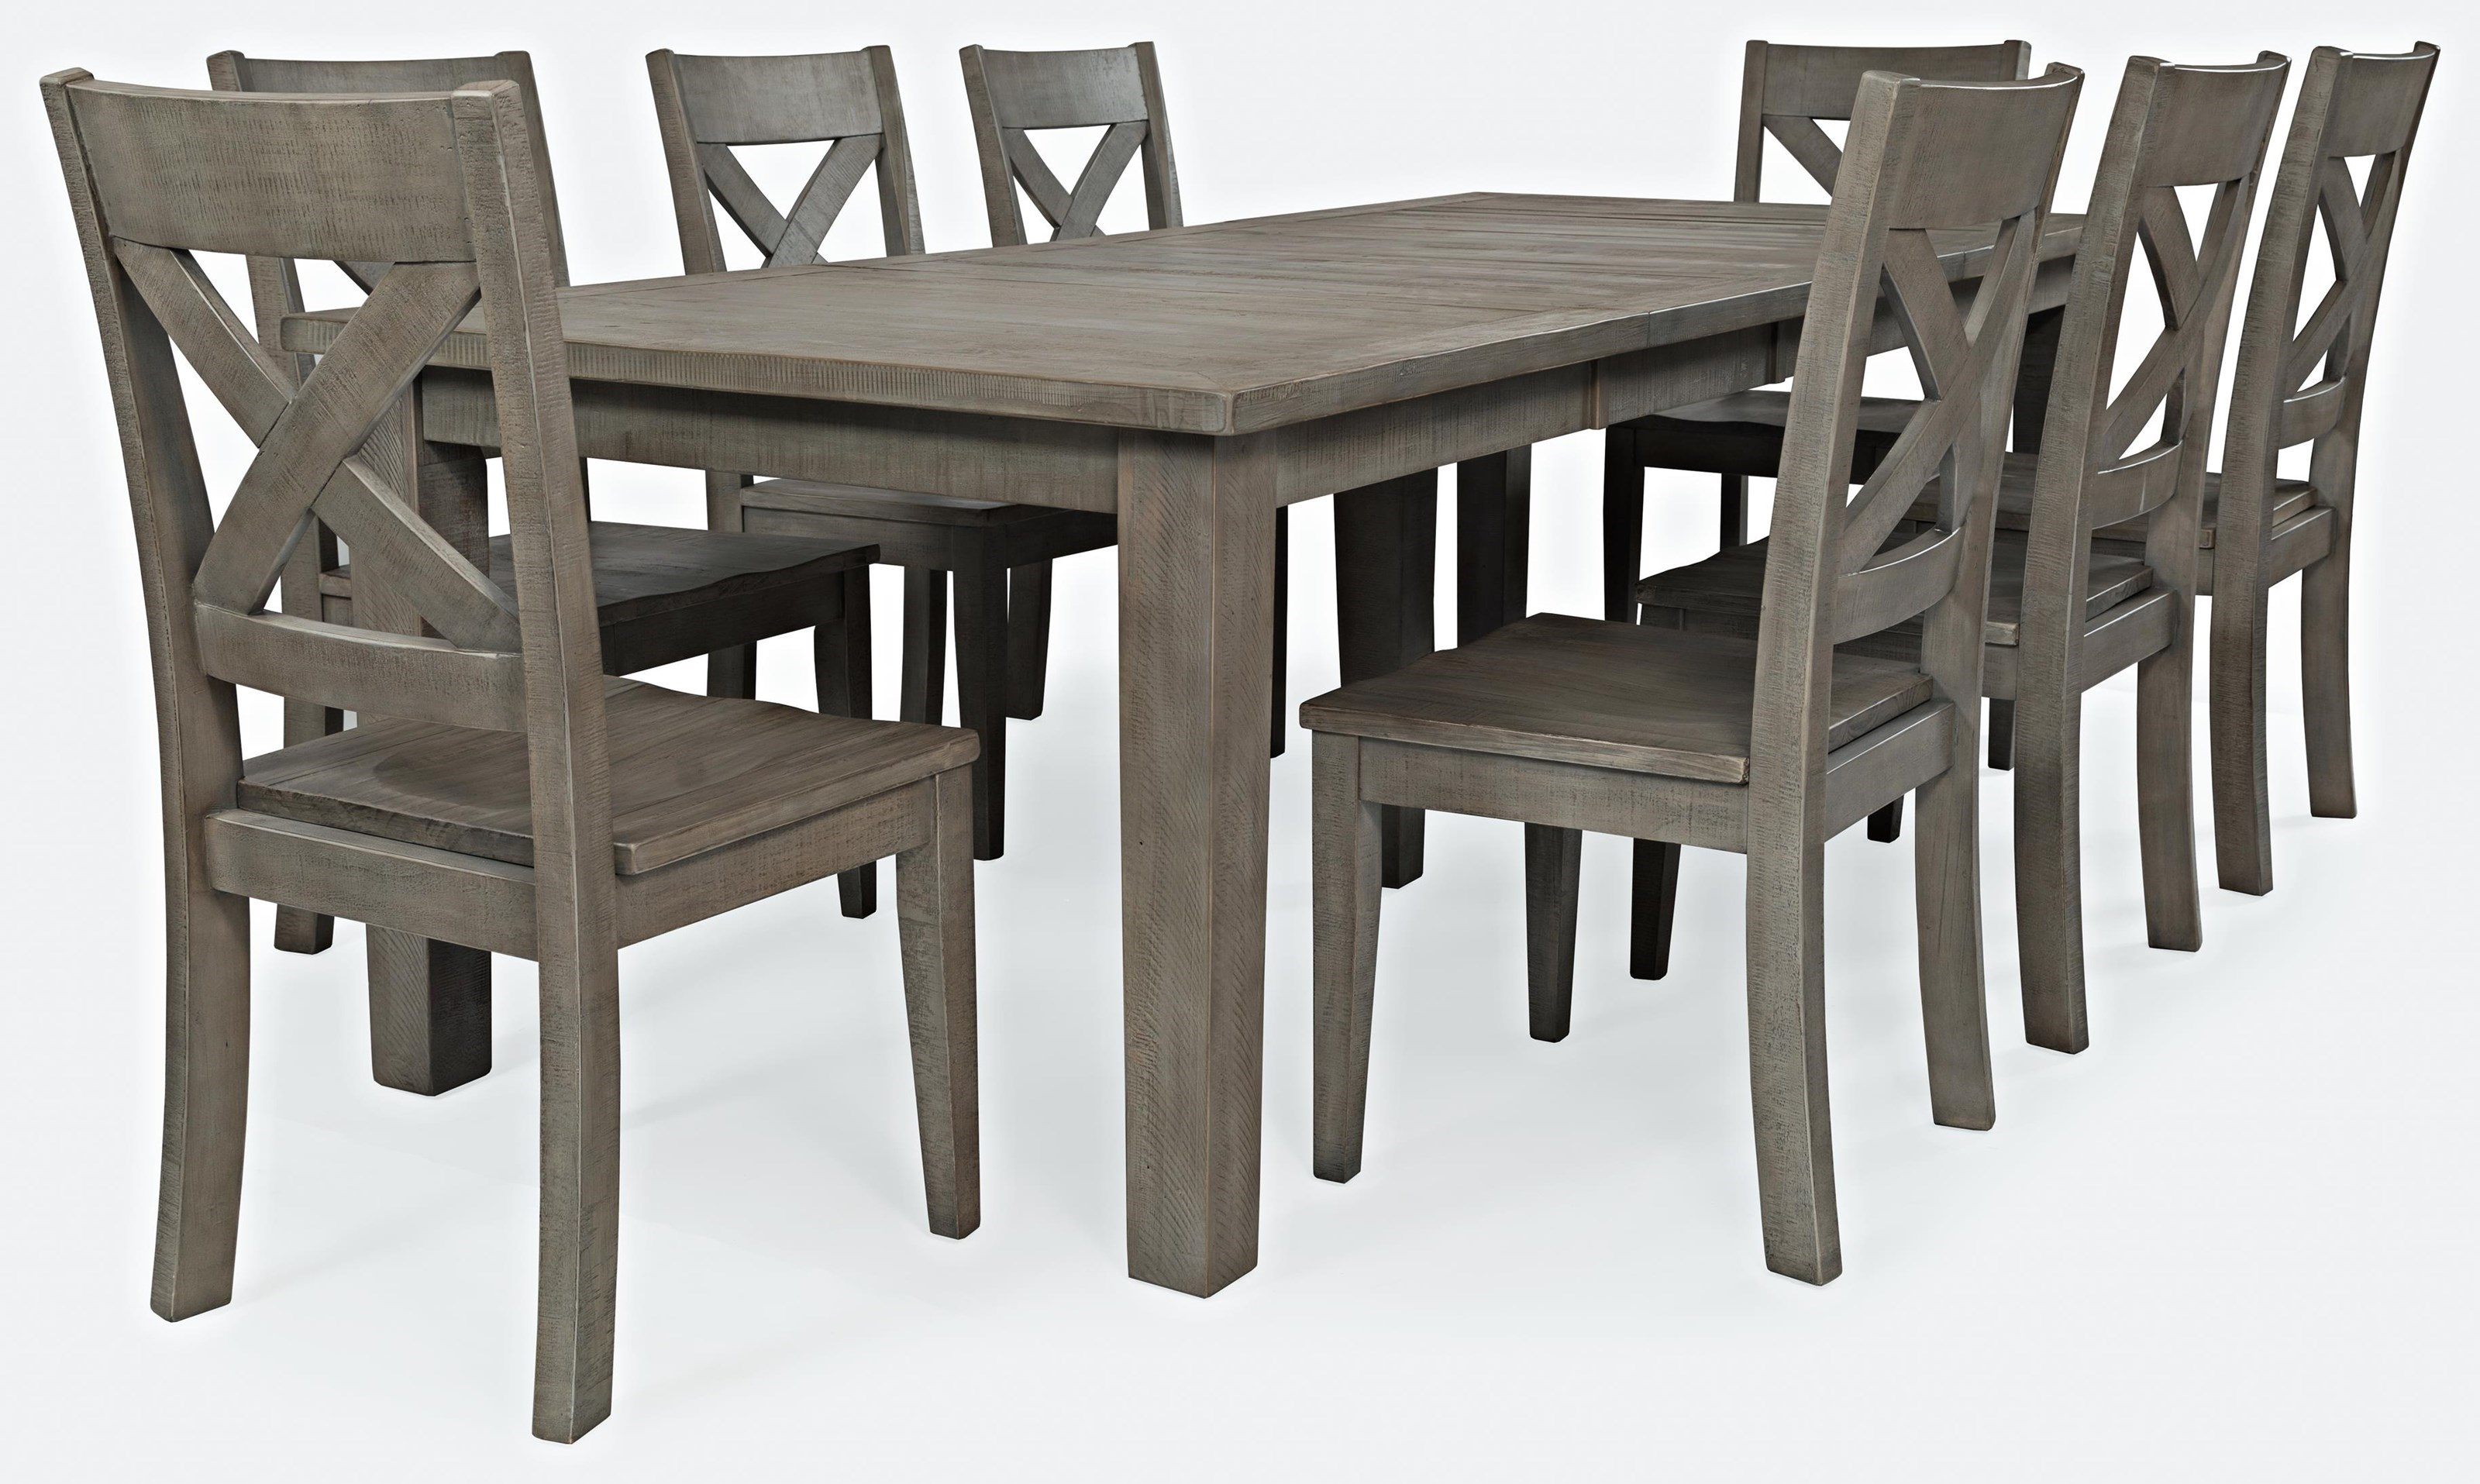 Jofran Outer Banks Table 8 Chairs Reeds Furniture Dining 7 Or More Piece Sets